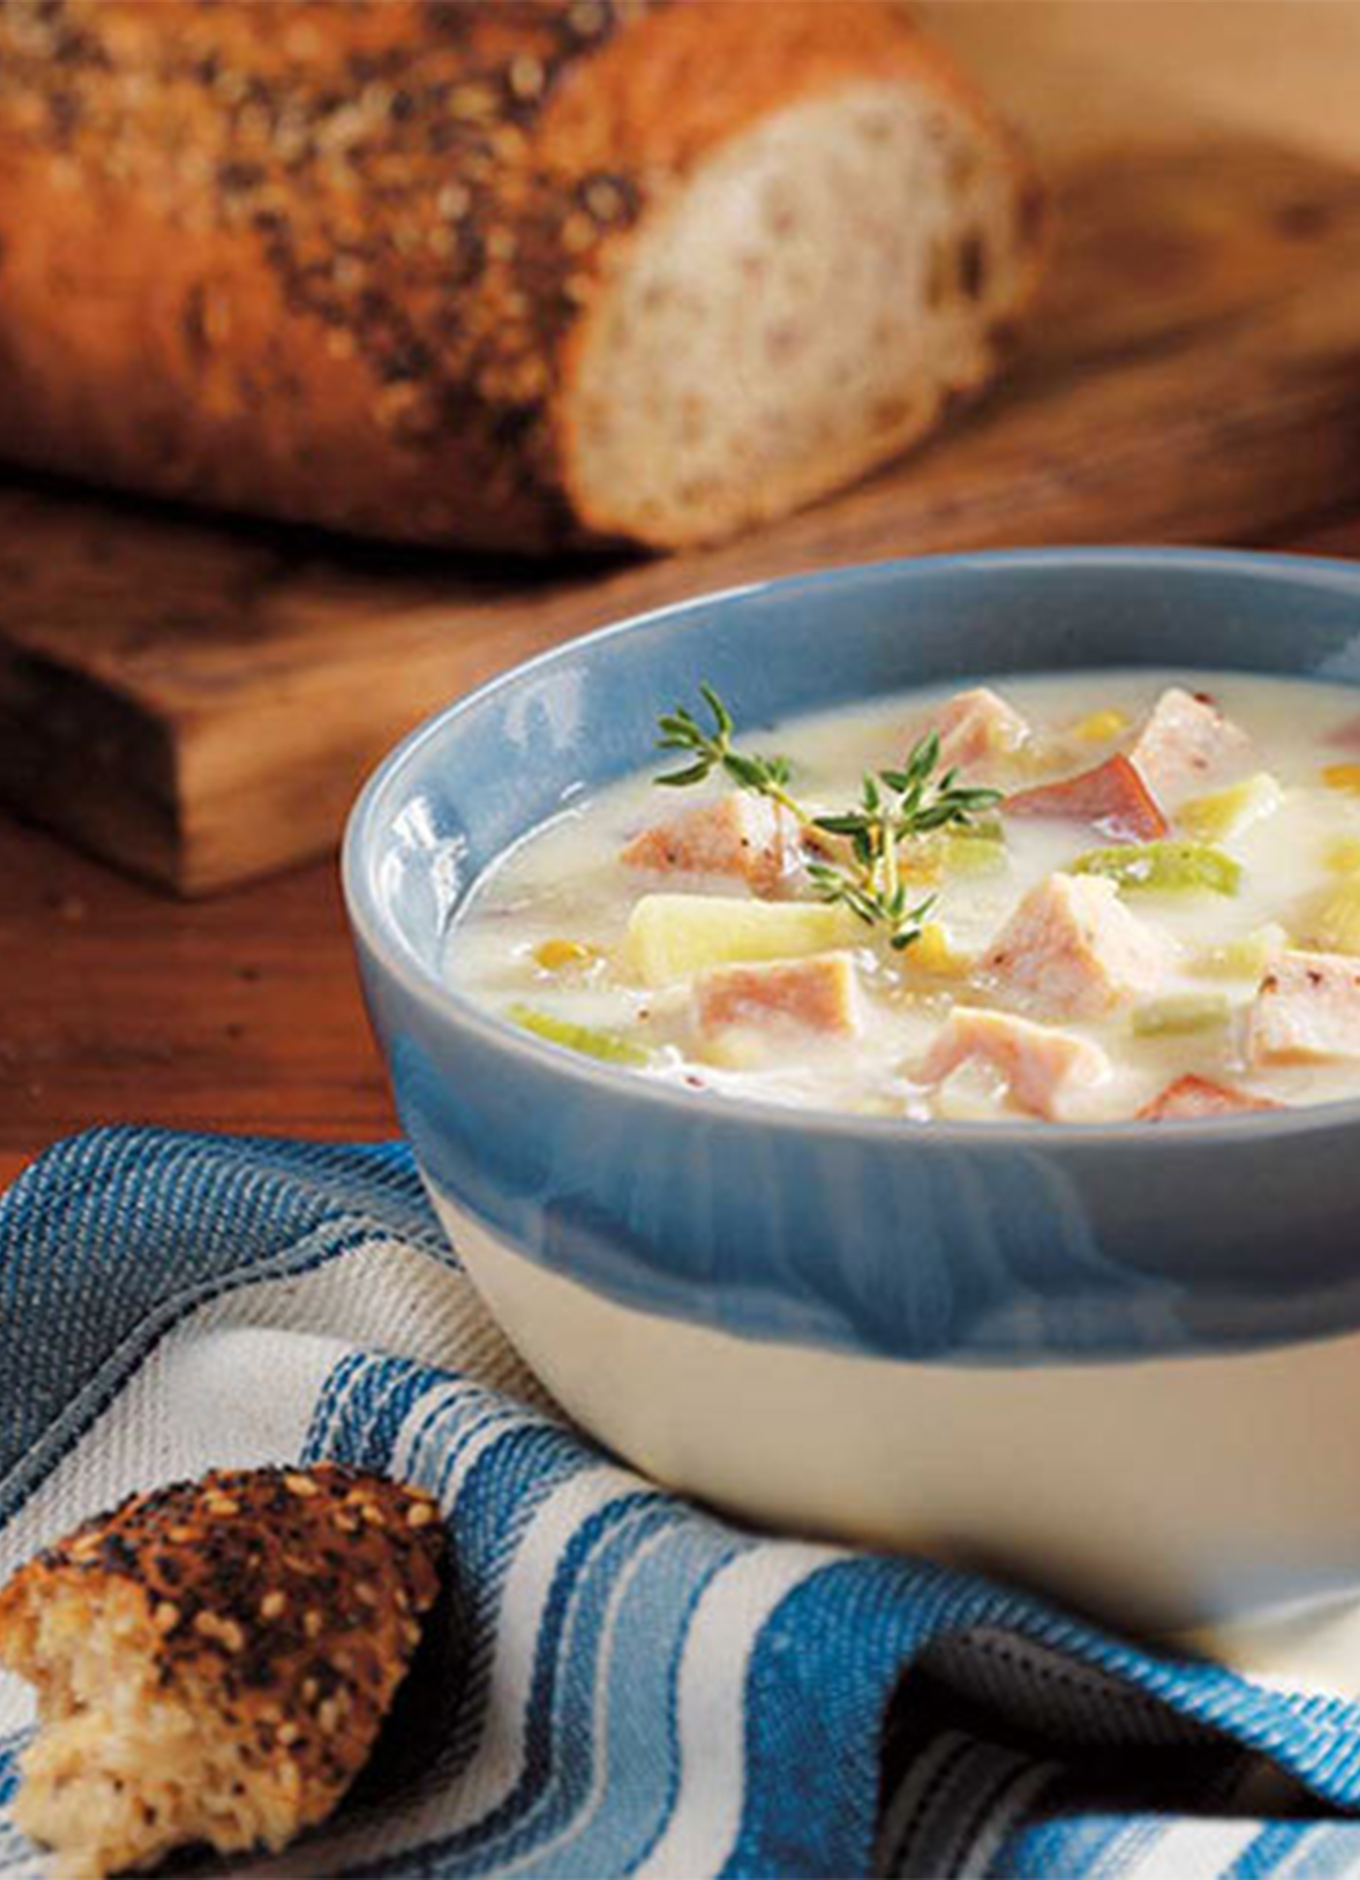 A bowl of Chicken & Corn Chowder on a table with freshly baked bread.